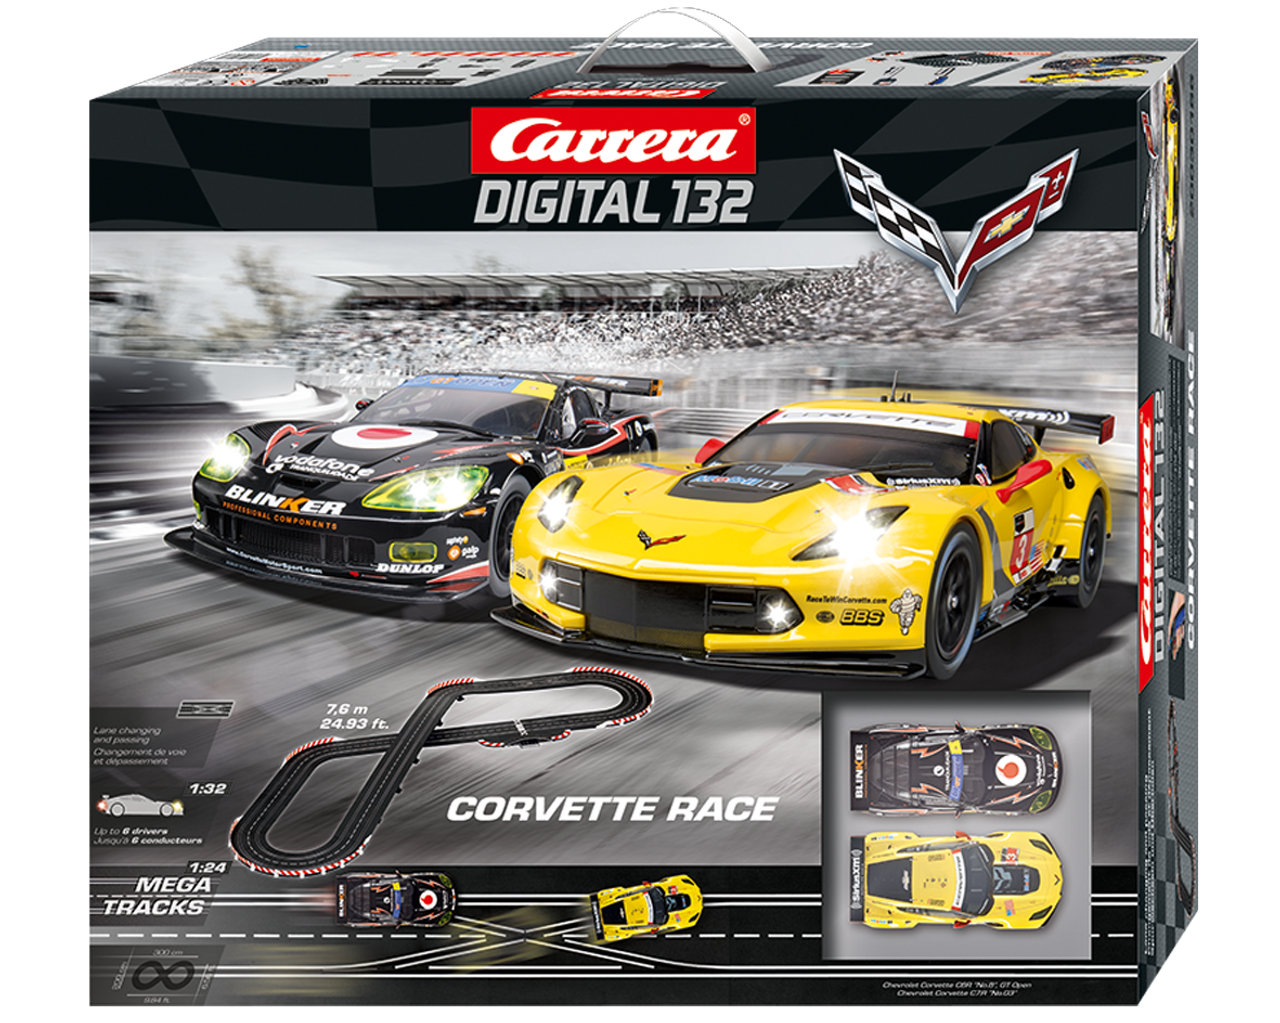 30186 Carrera Digital 132 Corvette Racers 1/32 Slot Car Racing Set